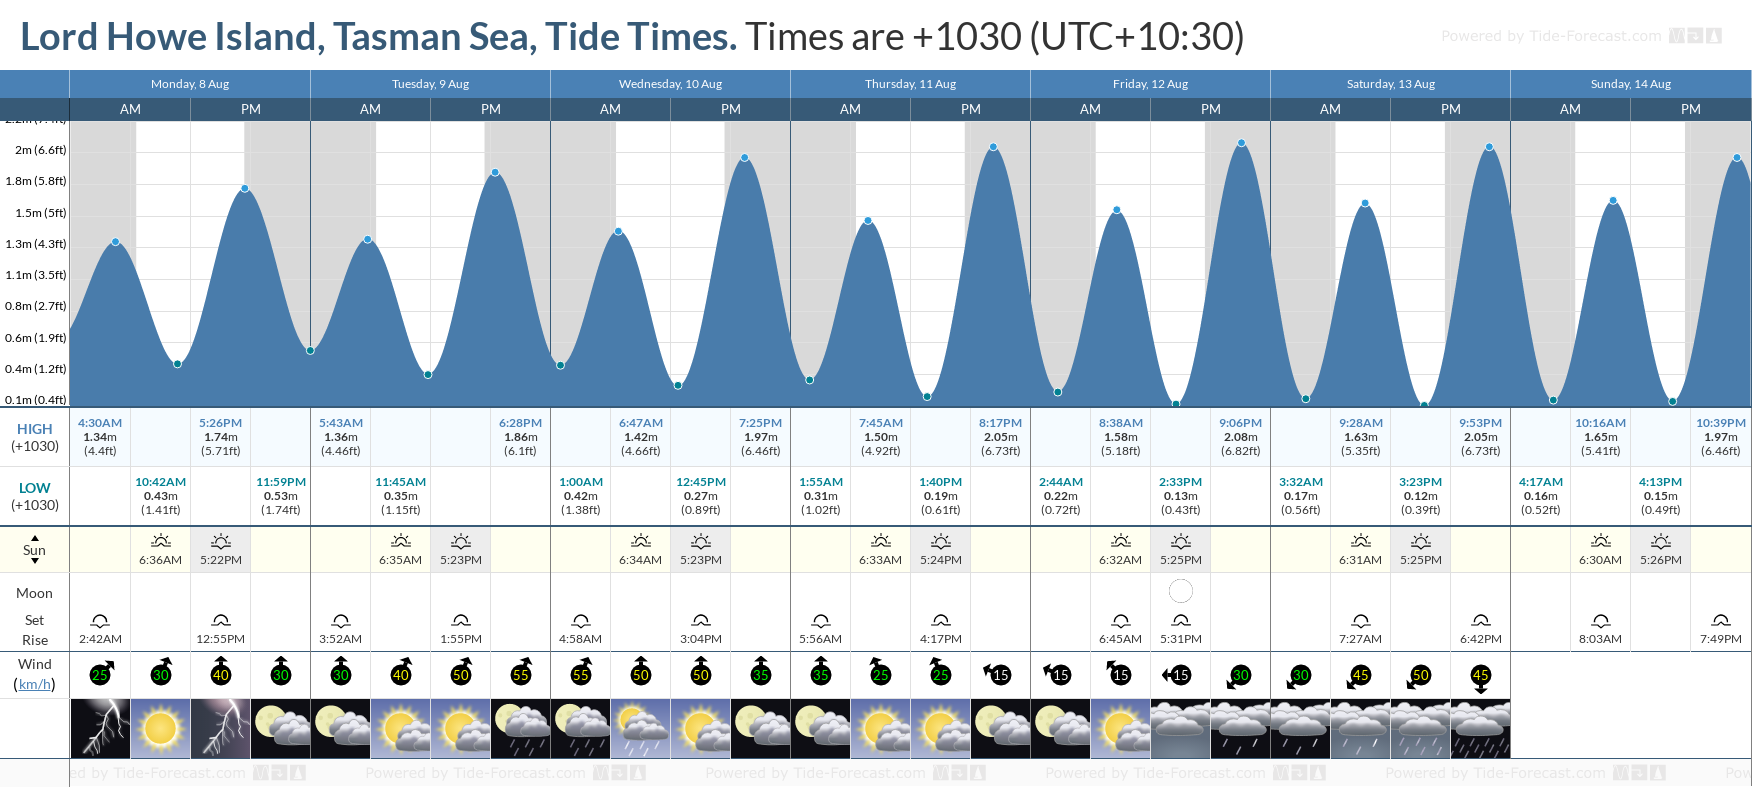 Lord Howe Island, Tasman Sea Tide Chart including high and low tide tide times for the next 7 days